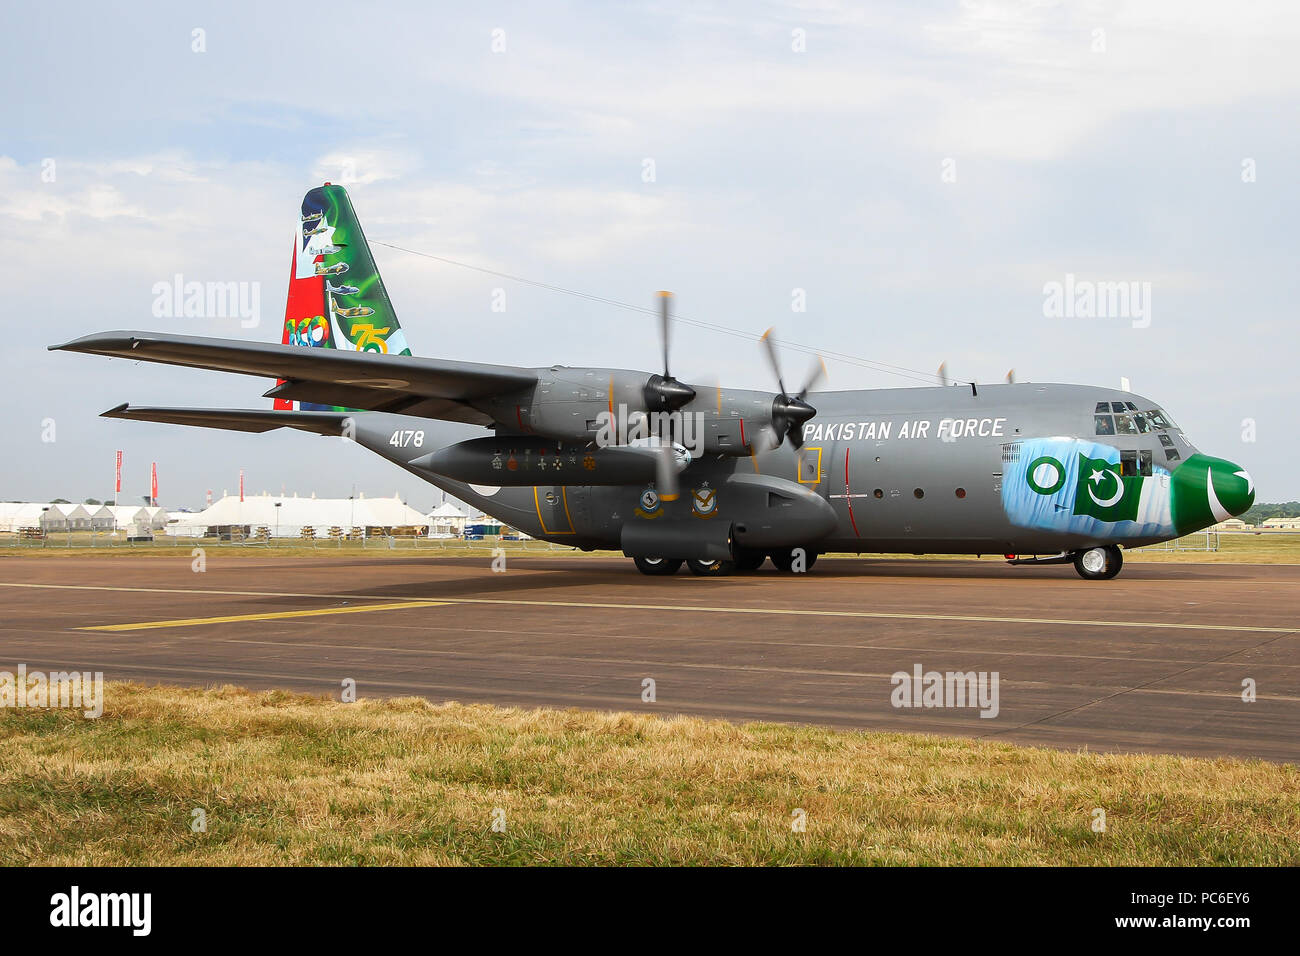 Fairford, UK. 16th July, 2018. Pakistan Air Force attended RIAT 2018 with their 75th anniversary C-130 Hercules. Credit: C. Van Grinsven/SOPA Images/ZUMA Wire/Alamy Live News - Stock Image